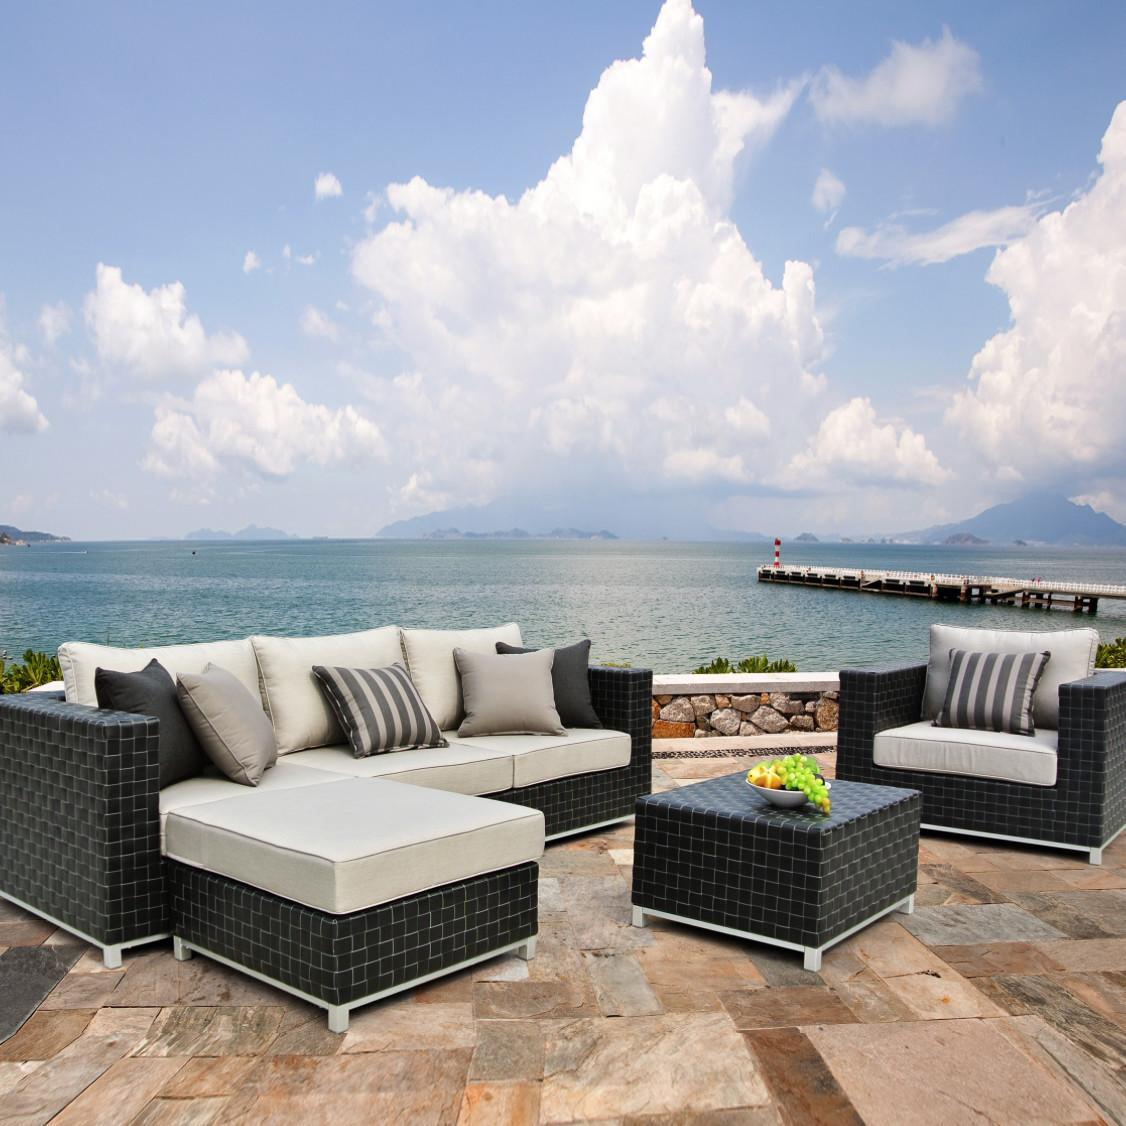 100 Outdoor Seating Ideas Patio Furniture Cool